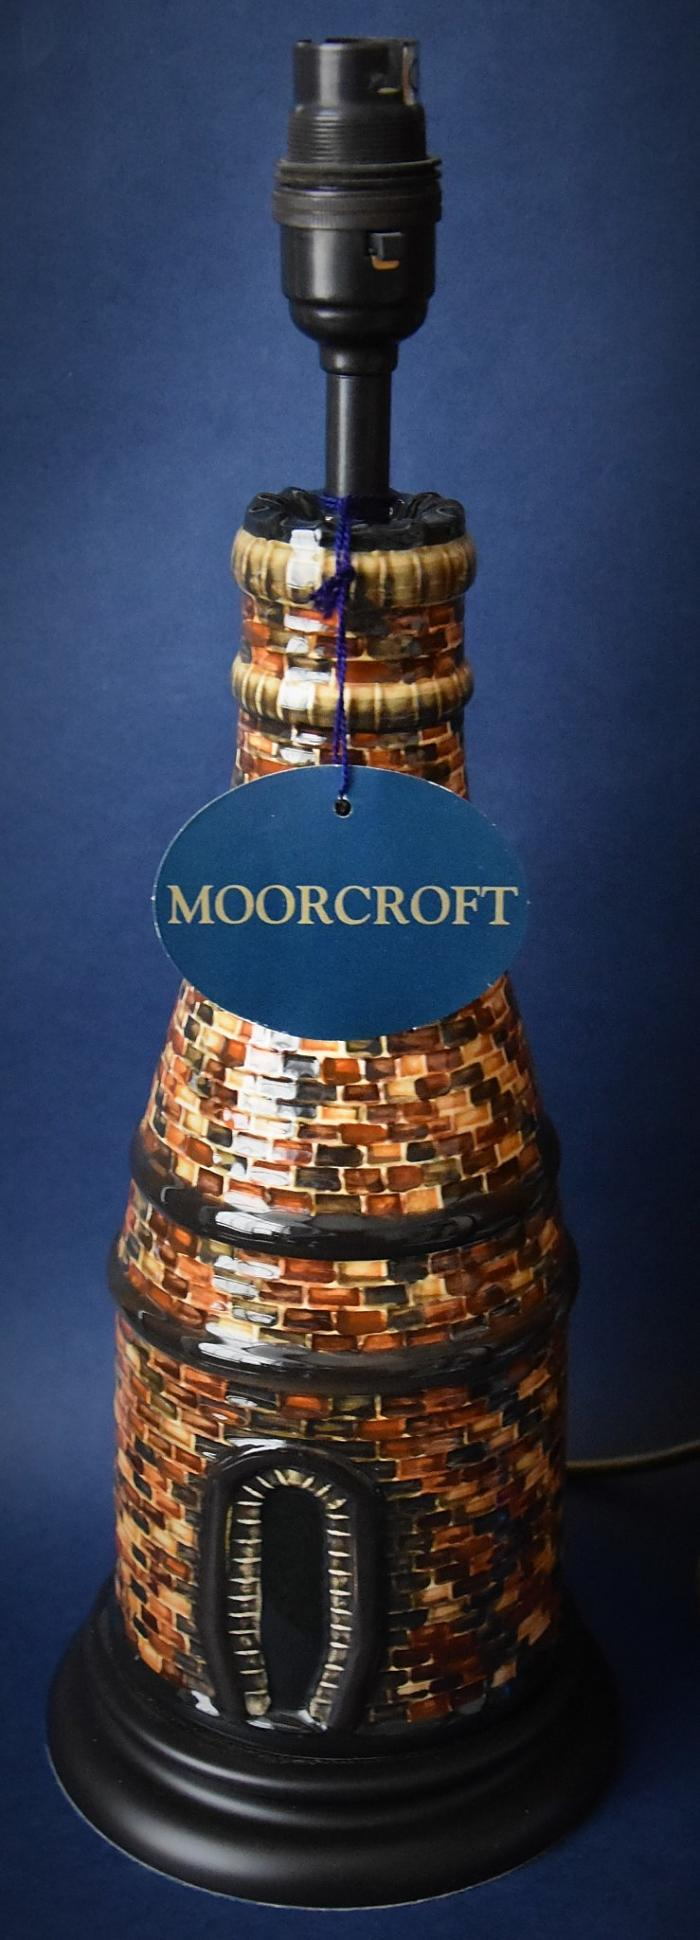 Moorcroft Pottery Bottle Oven Lamp Rob Tabbenor An Open Edition